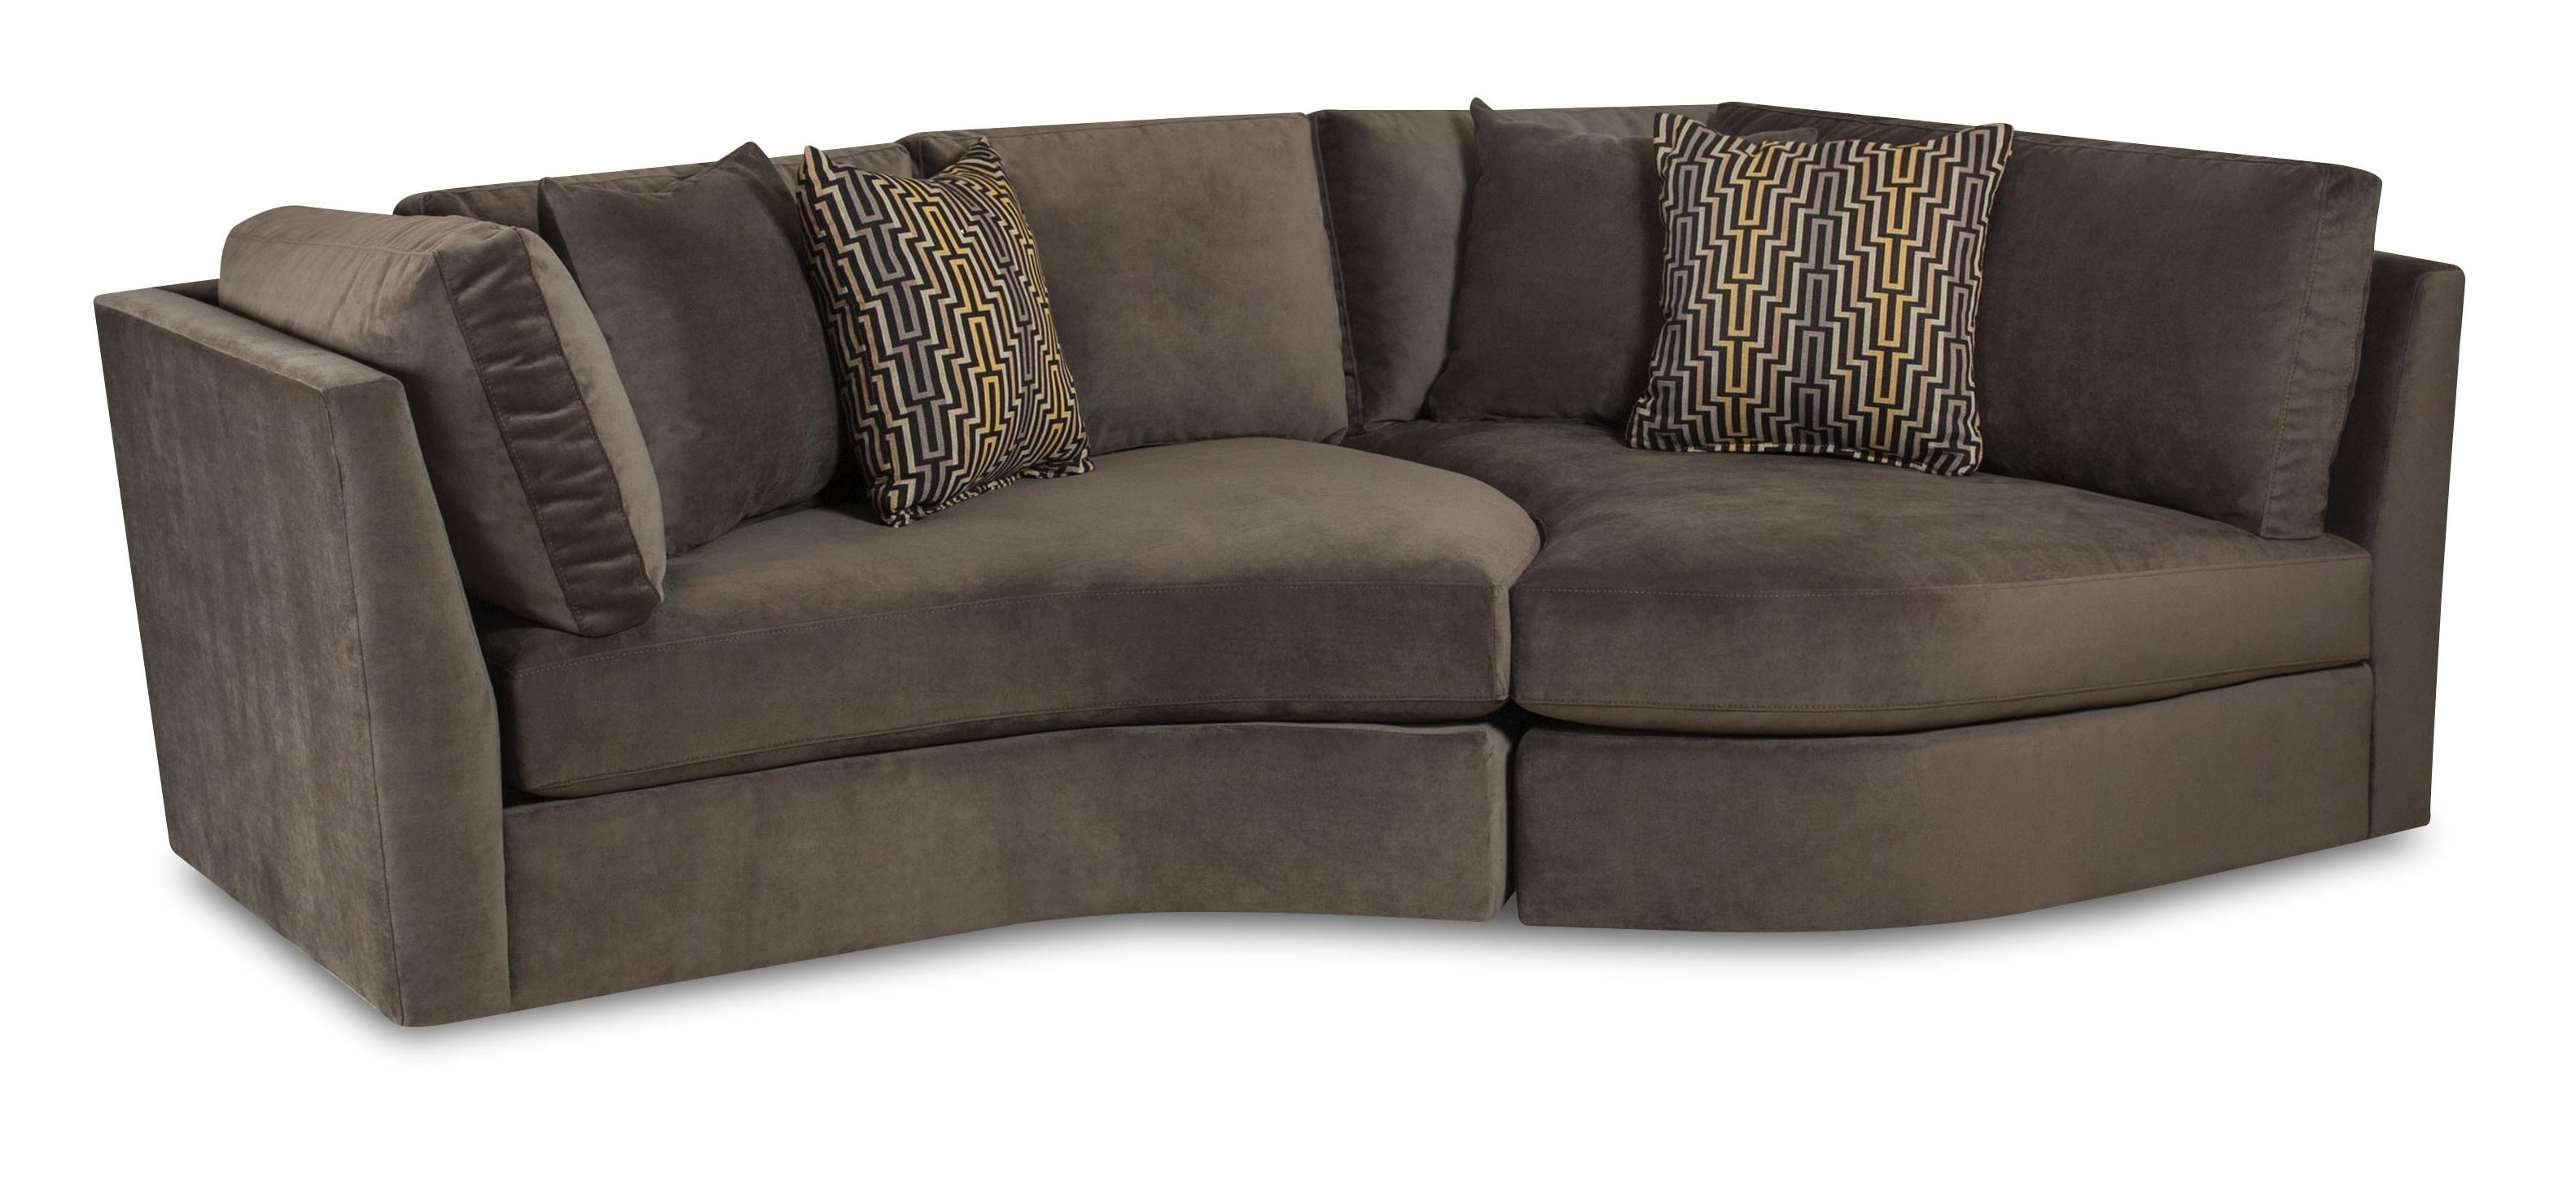 55JA Transitional Two Piece Accent Sofa With Curved Shape By Bauhaus